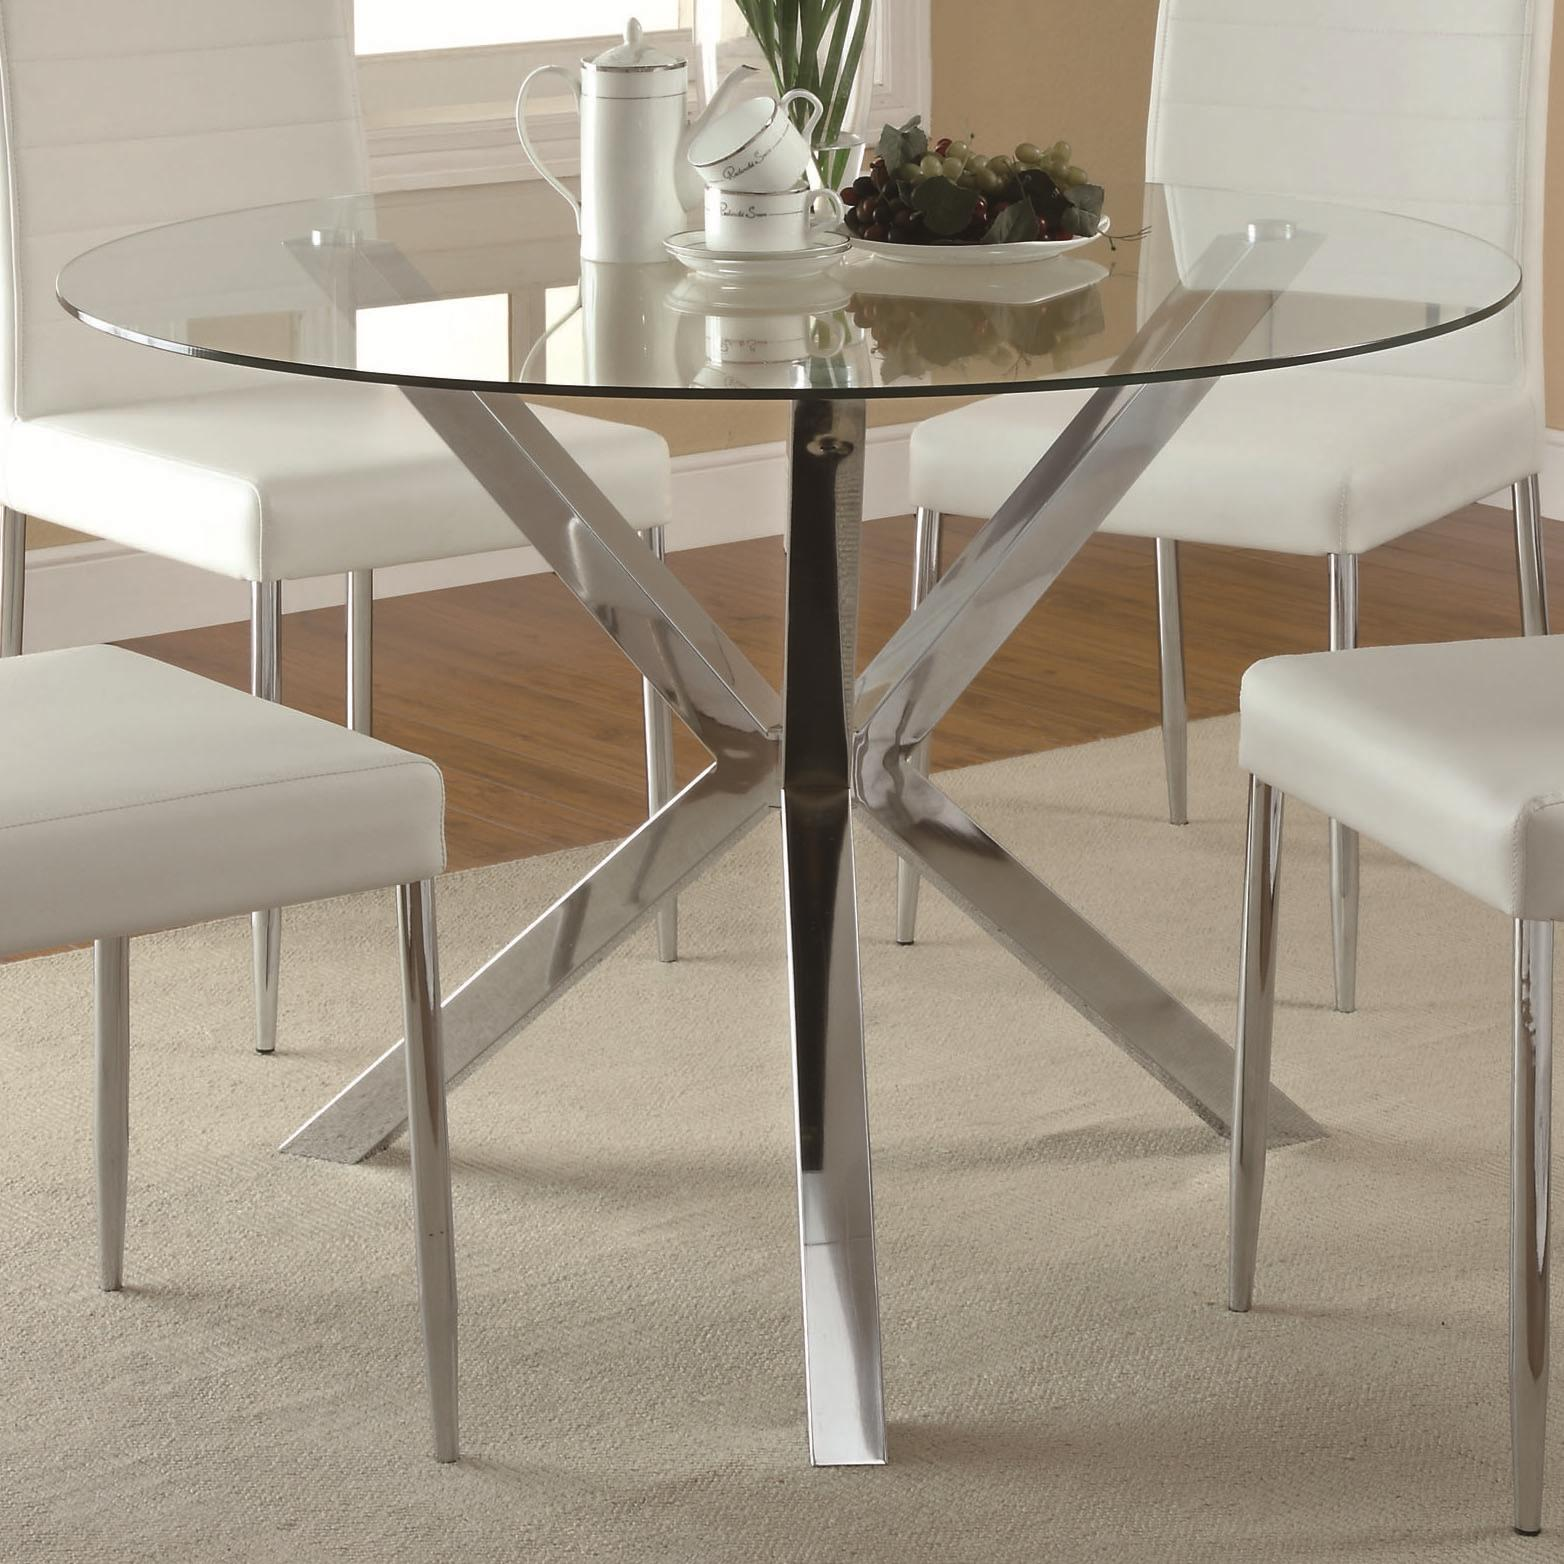 Coaster Vance 120760 Contemporary Glass-Top Dining Table